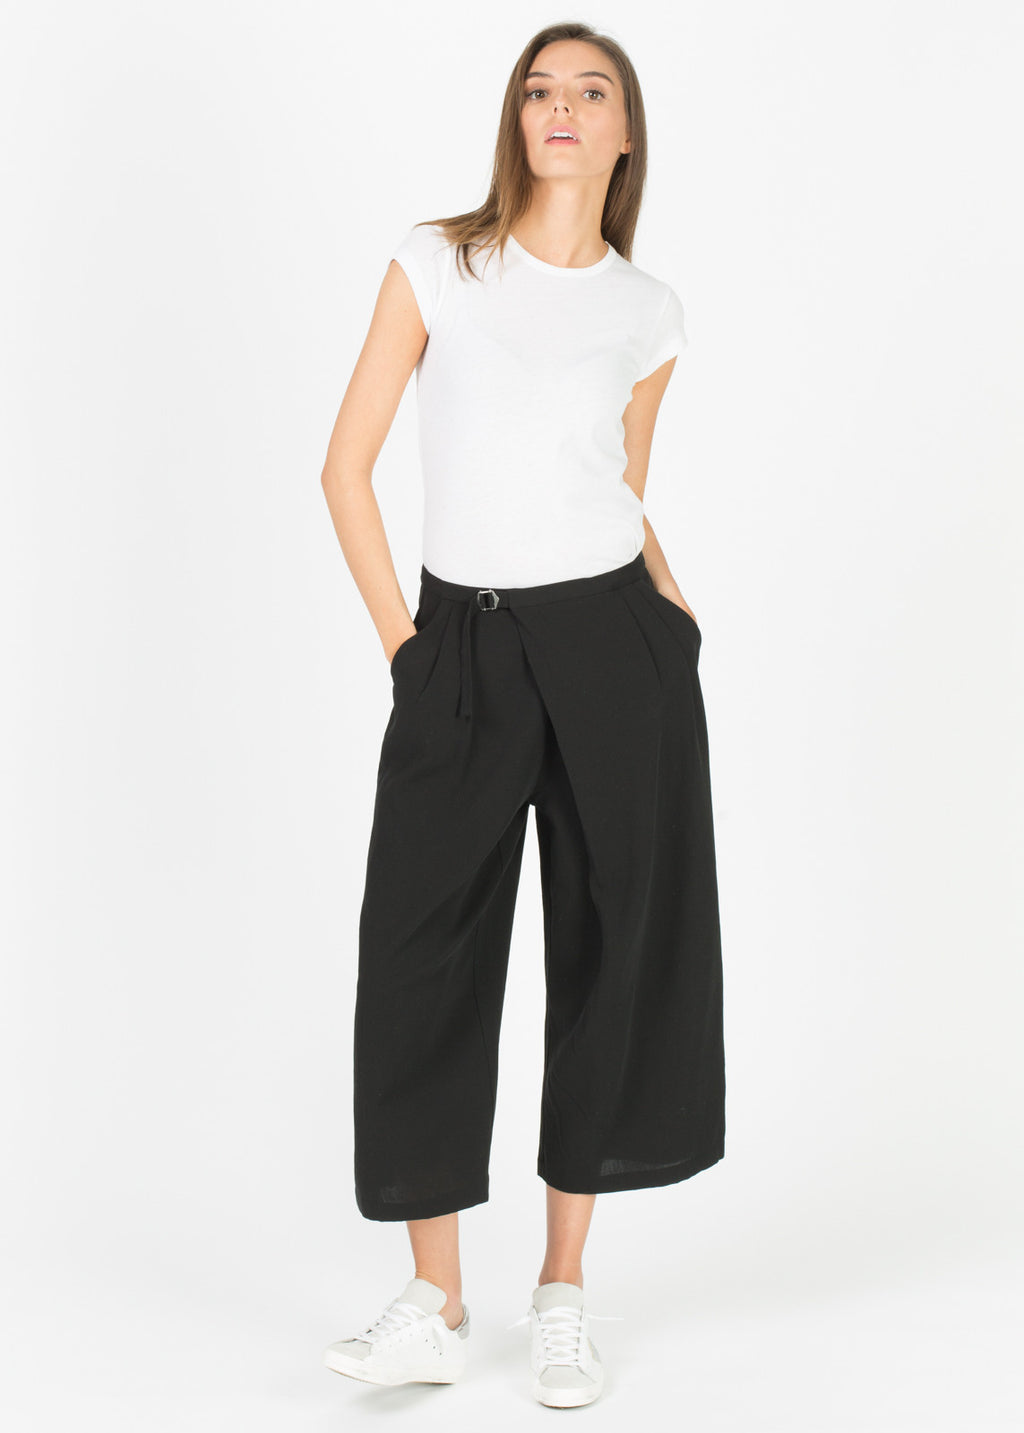 Double Cloth Wrap Pant